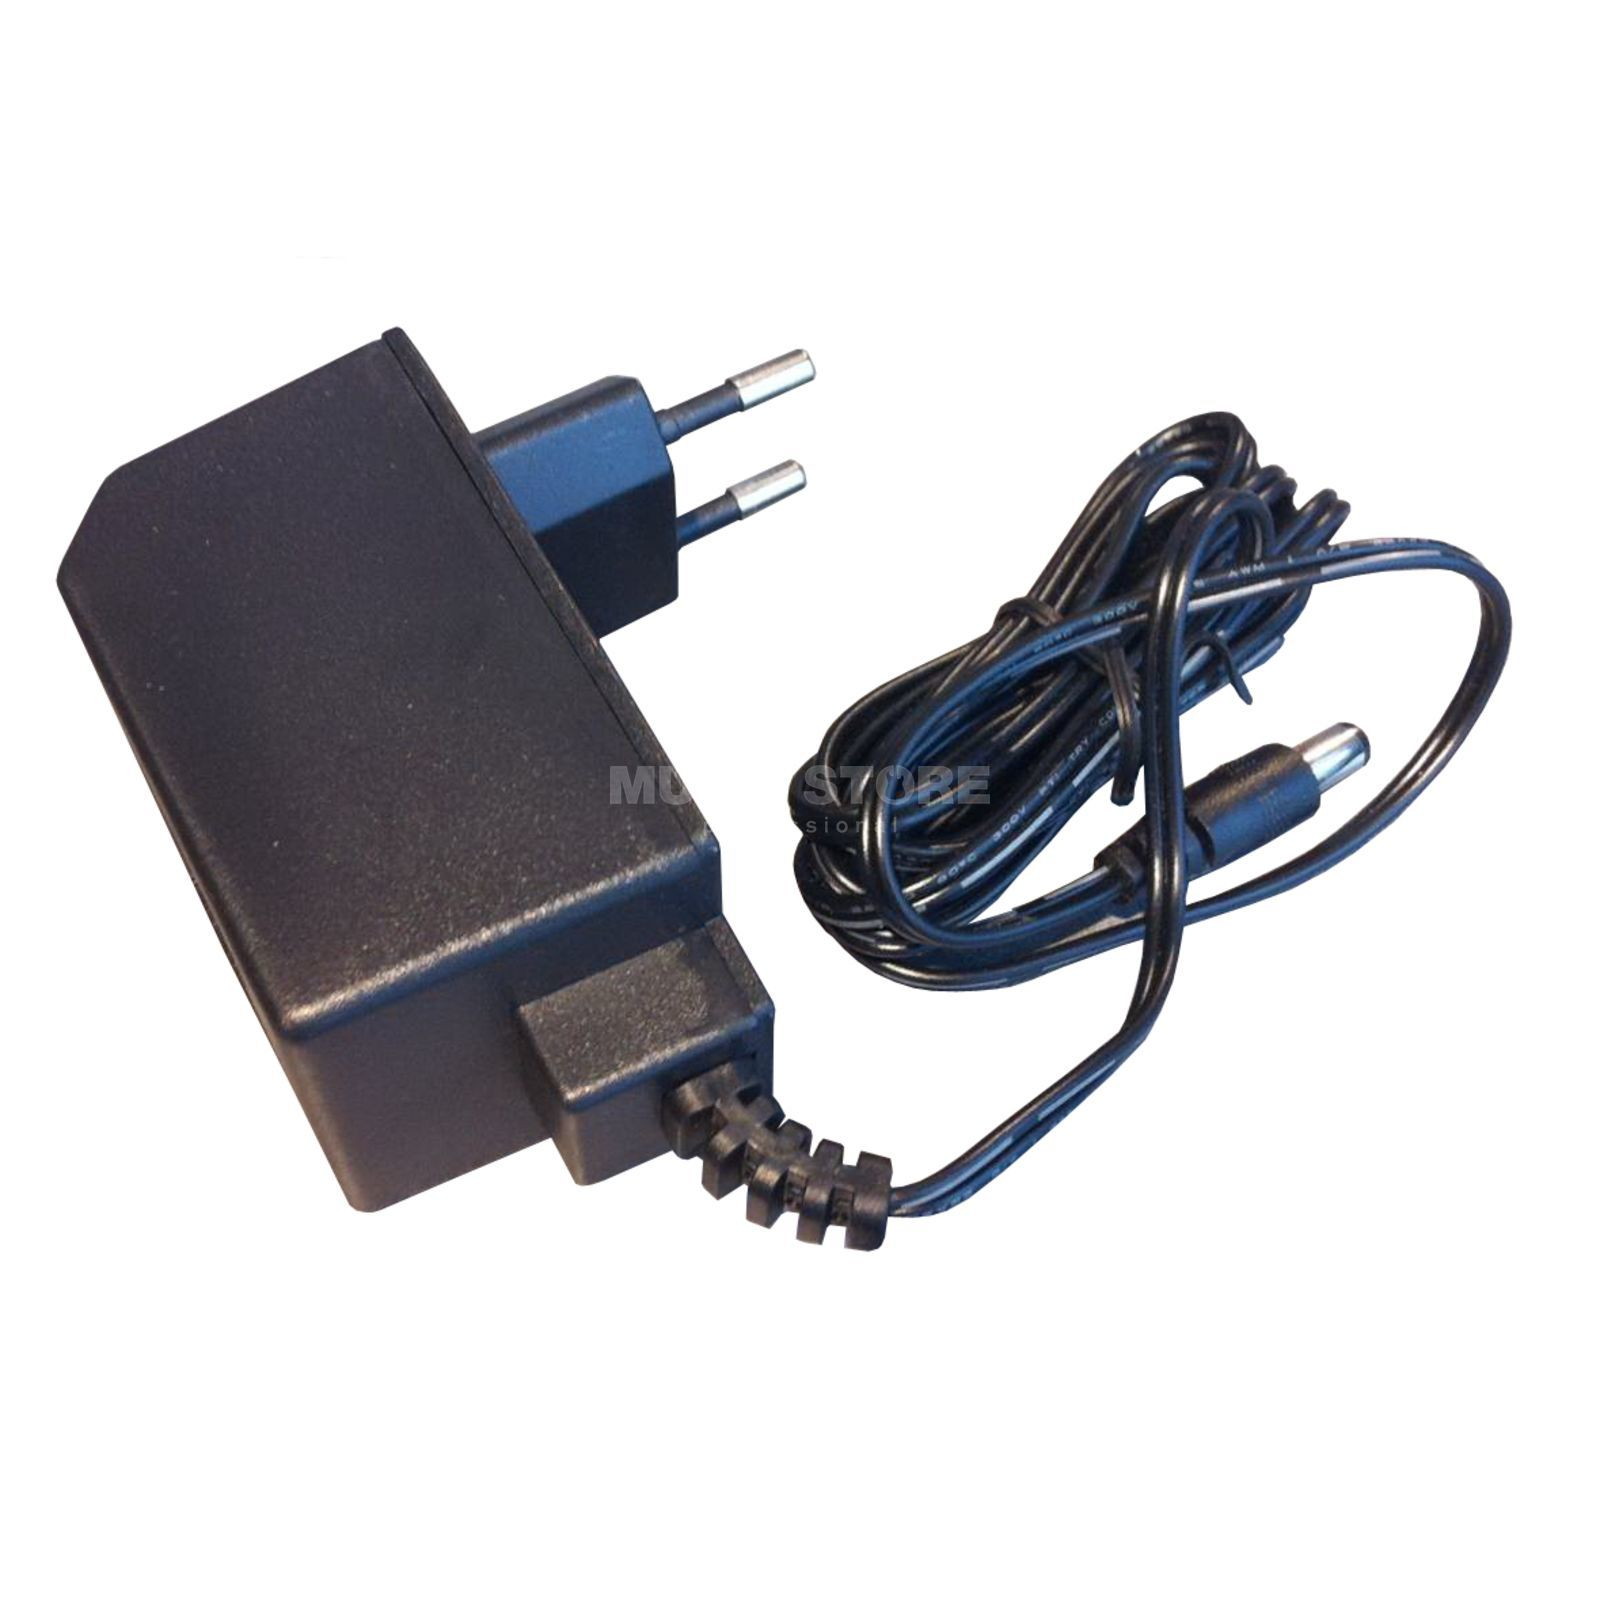 Alesis Power Adapter for DM 5 Sound Module Product Image